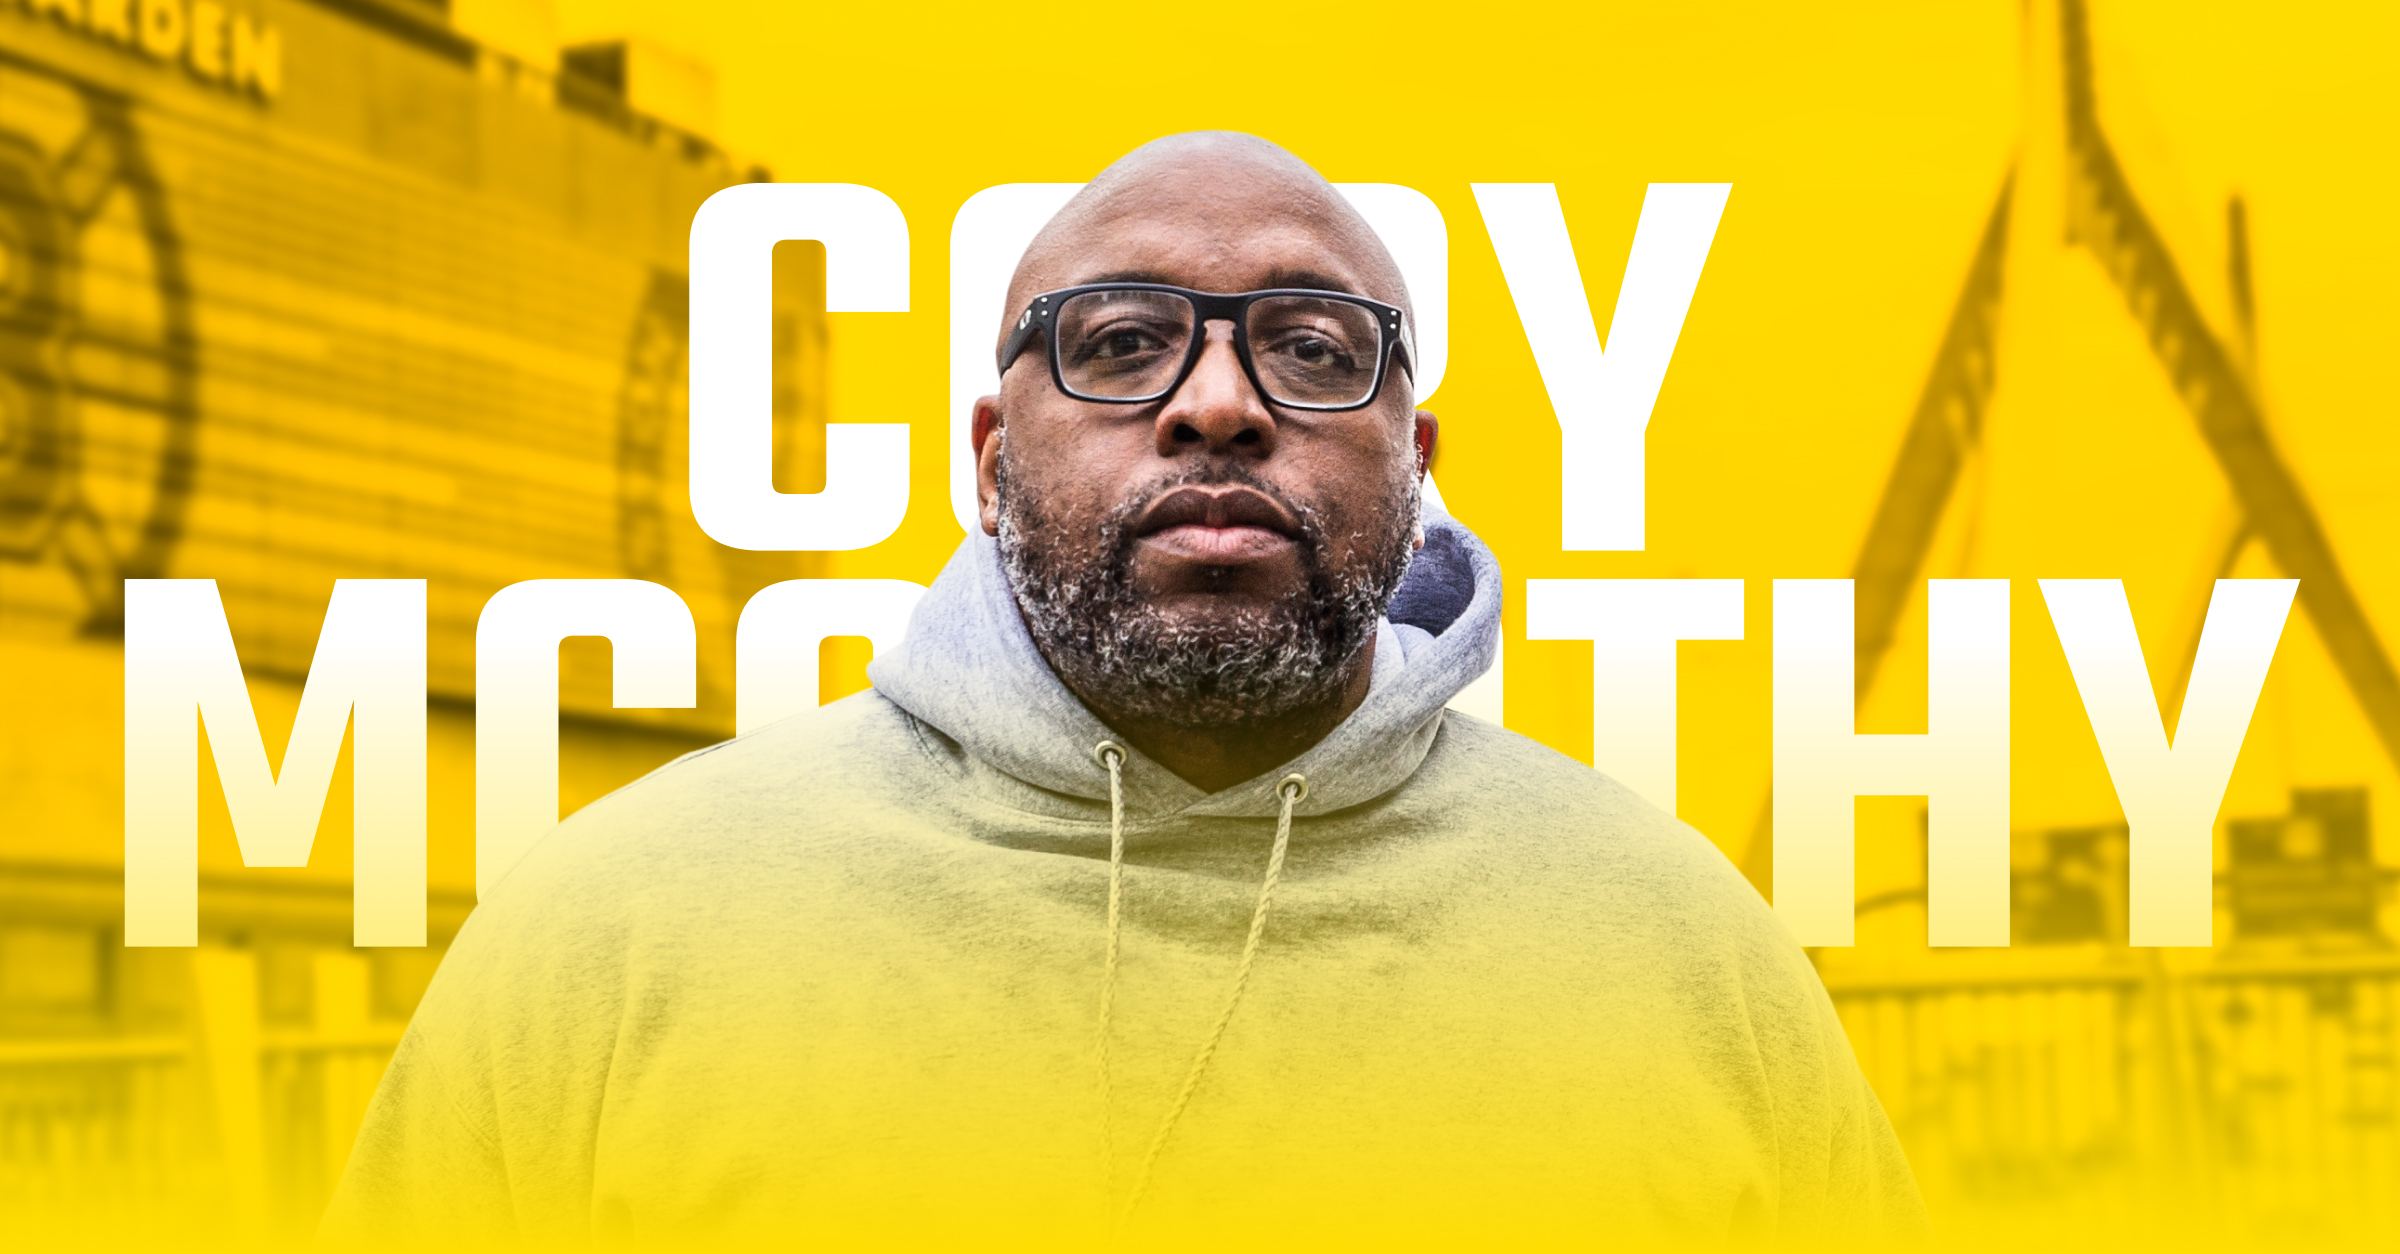 Cory McCarthy Uses the Power of Athletics to Transform This Urban School